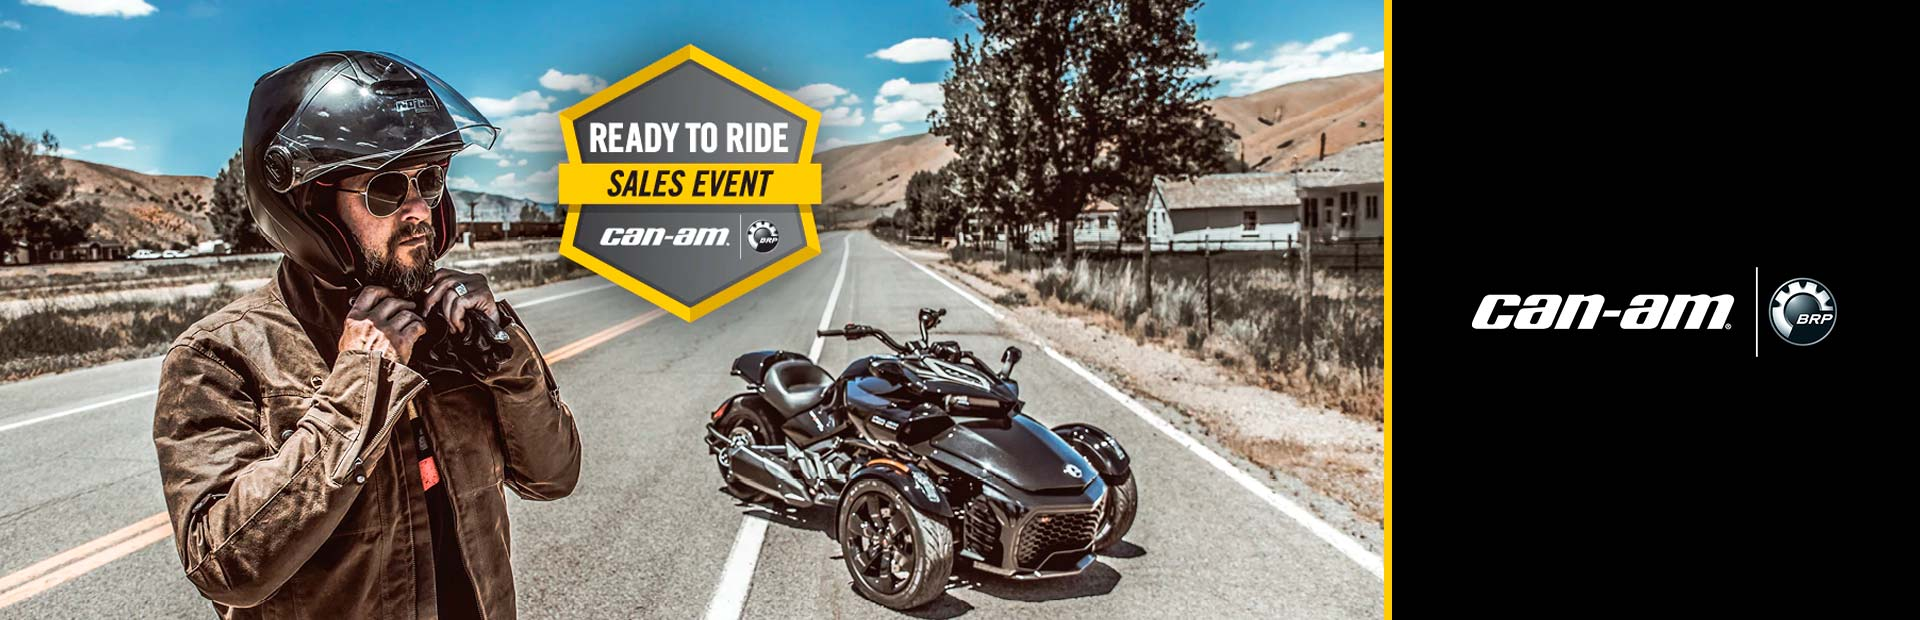 Can-Am: Ready To Ride Sales Event - Spyder